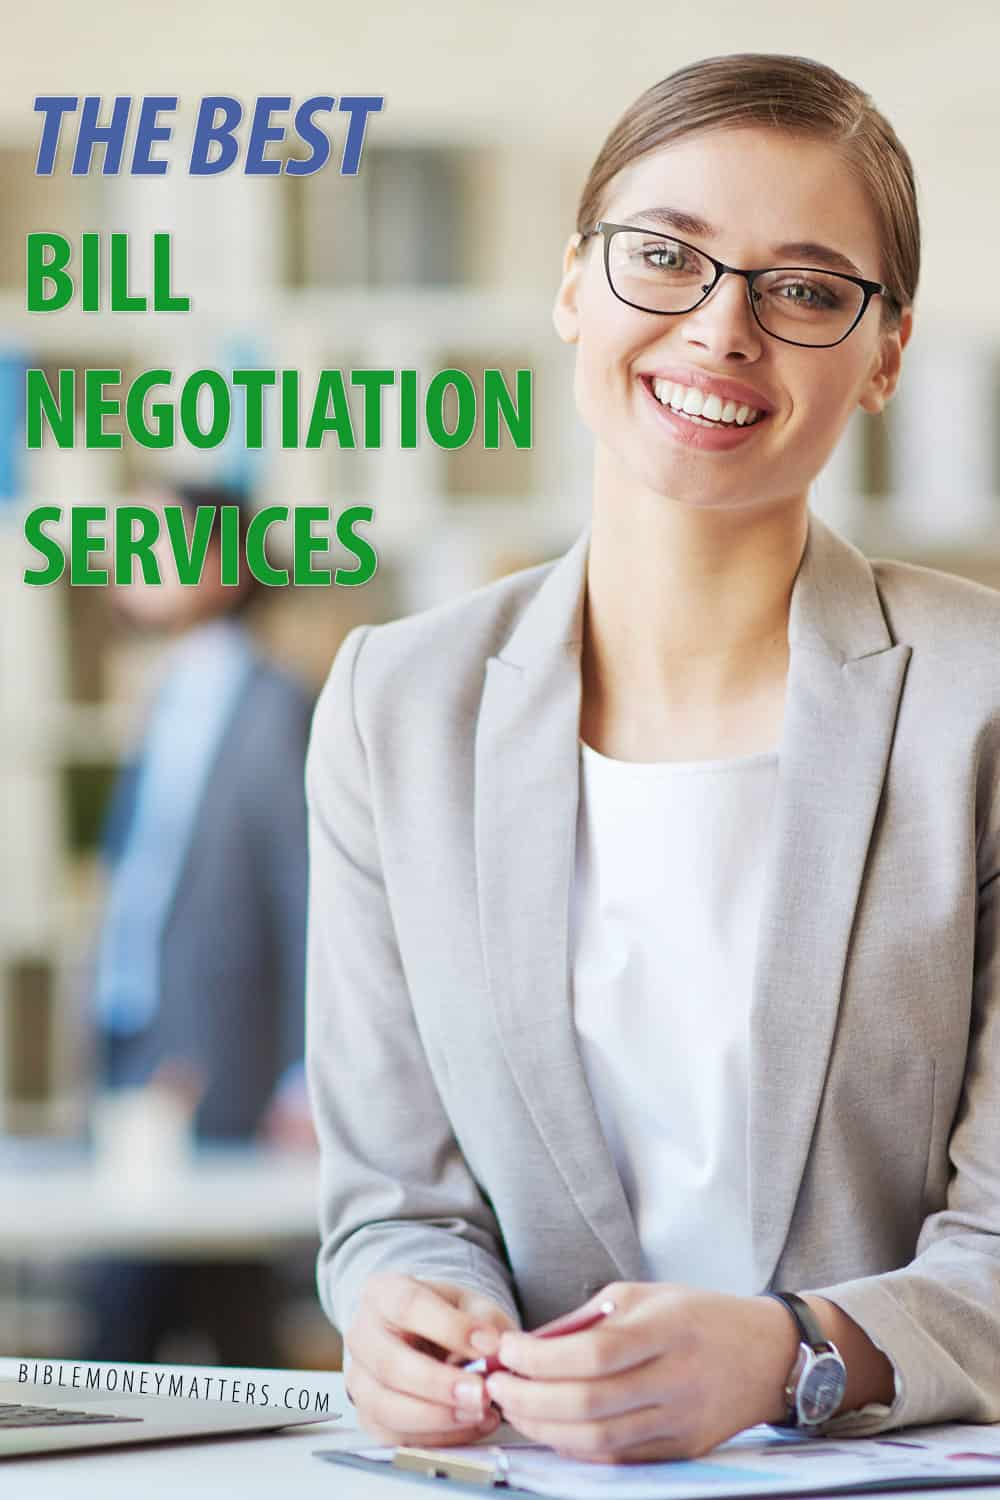 The Best Bill Negotiation Services: Bill Shark Vs BillCutterz Vs Truebill Vs BillFixers Vs Trim Vs Bill Advisor